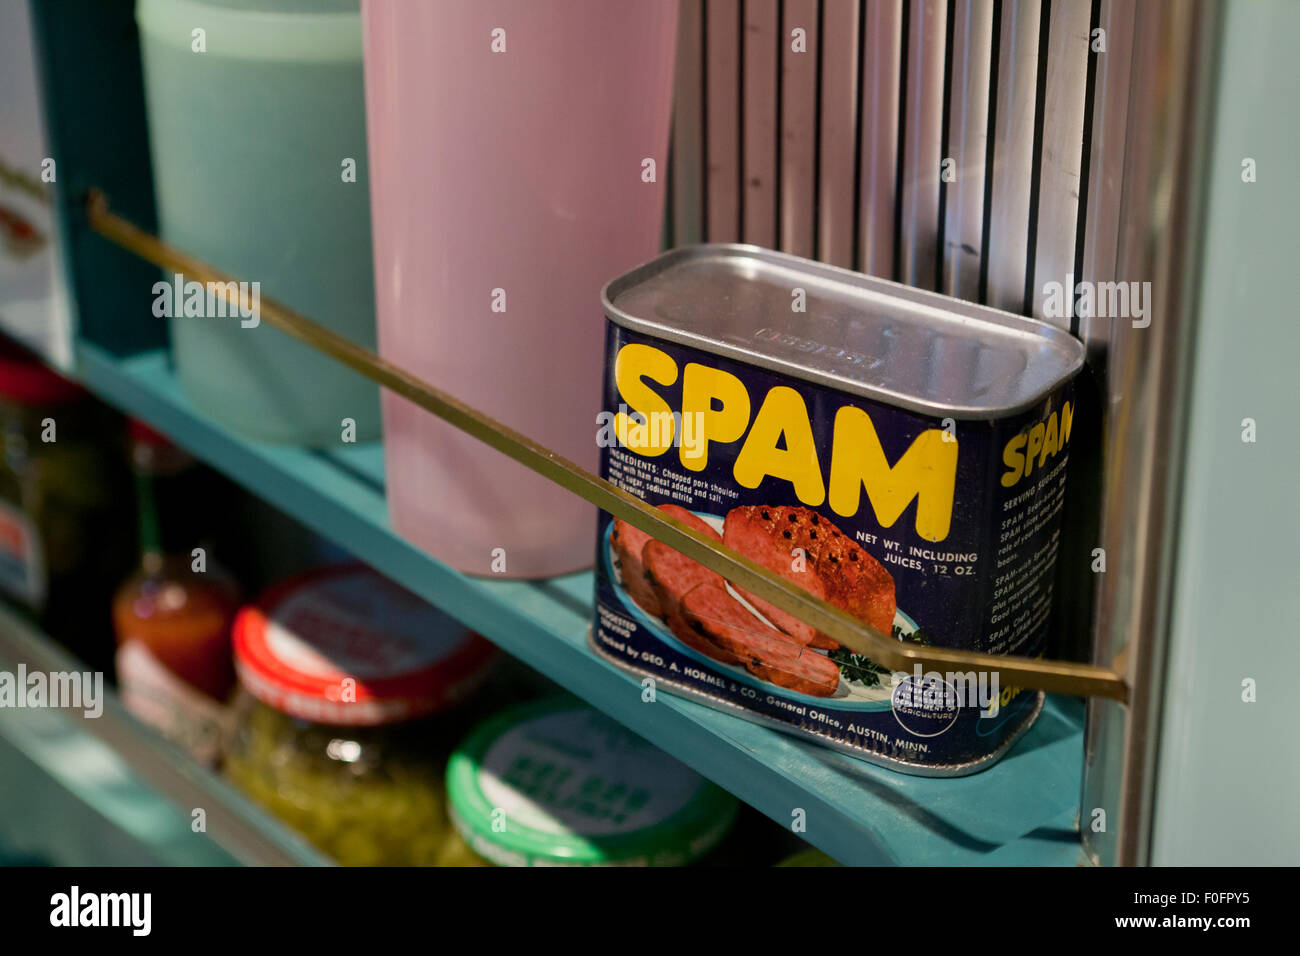 Can of Spam in refrigerator - USA - Stock Image